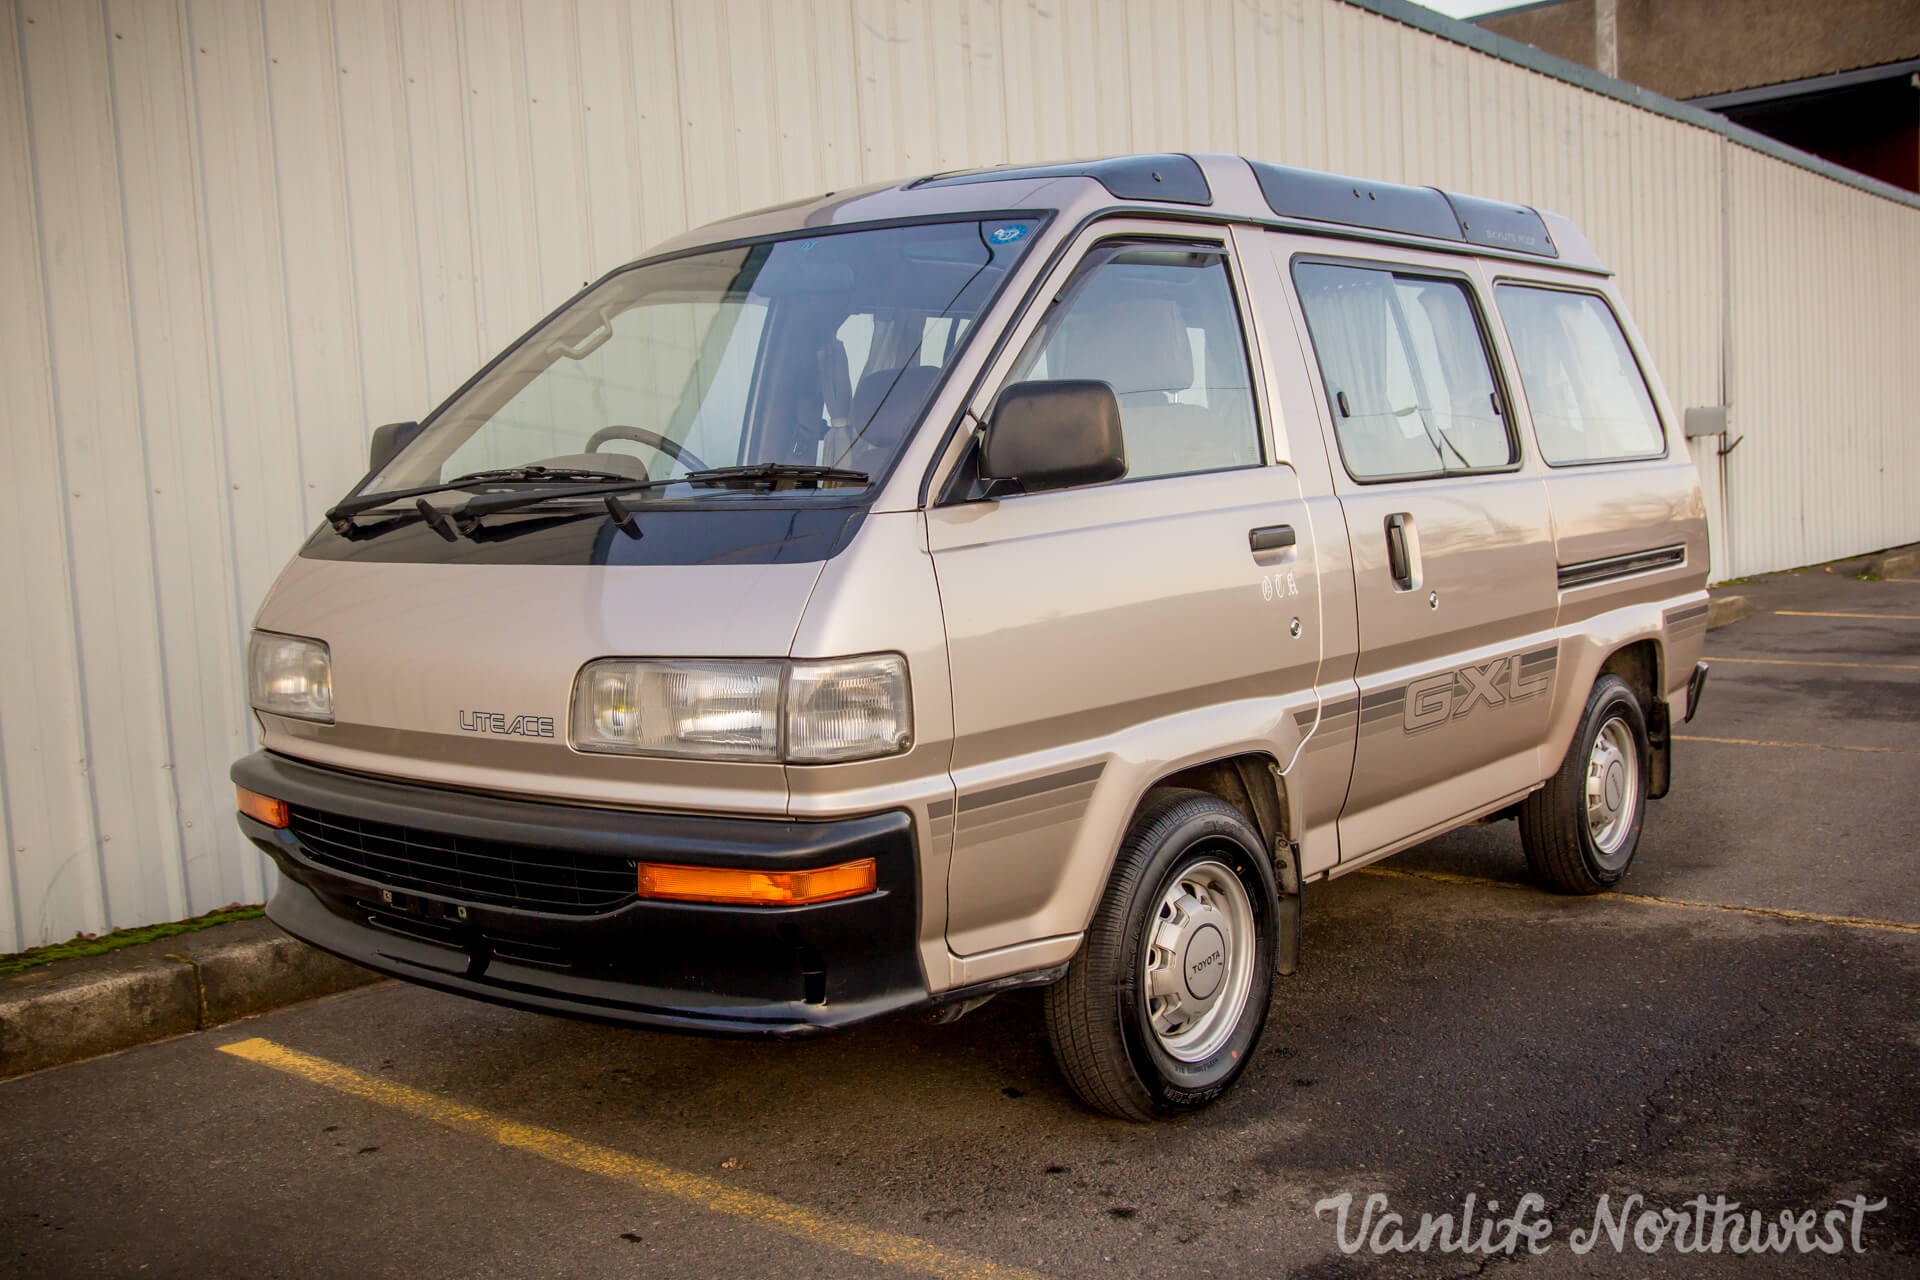 1989ToyotaLiteAce2wdGas65kGXL-6.jpg